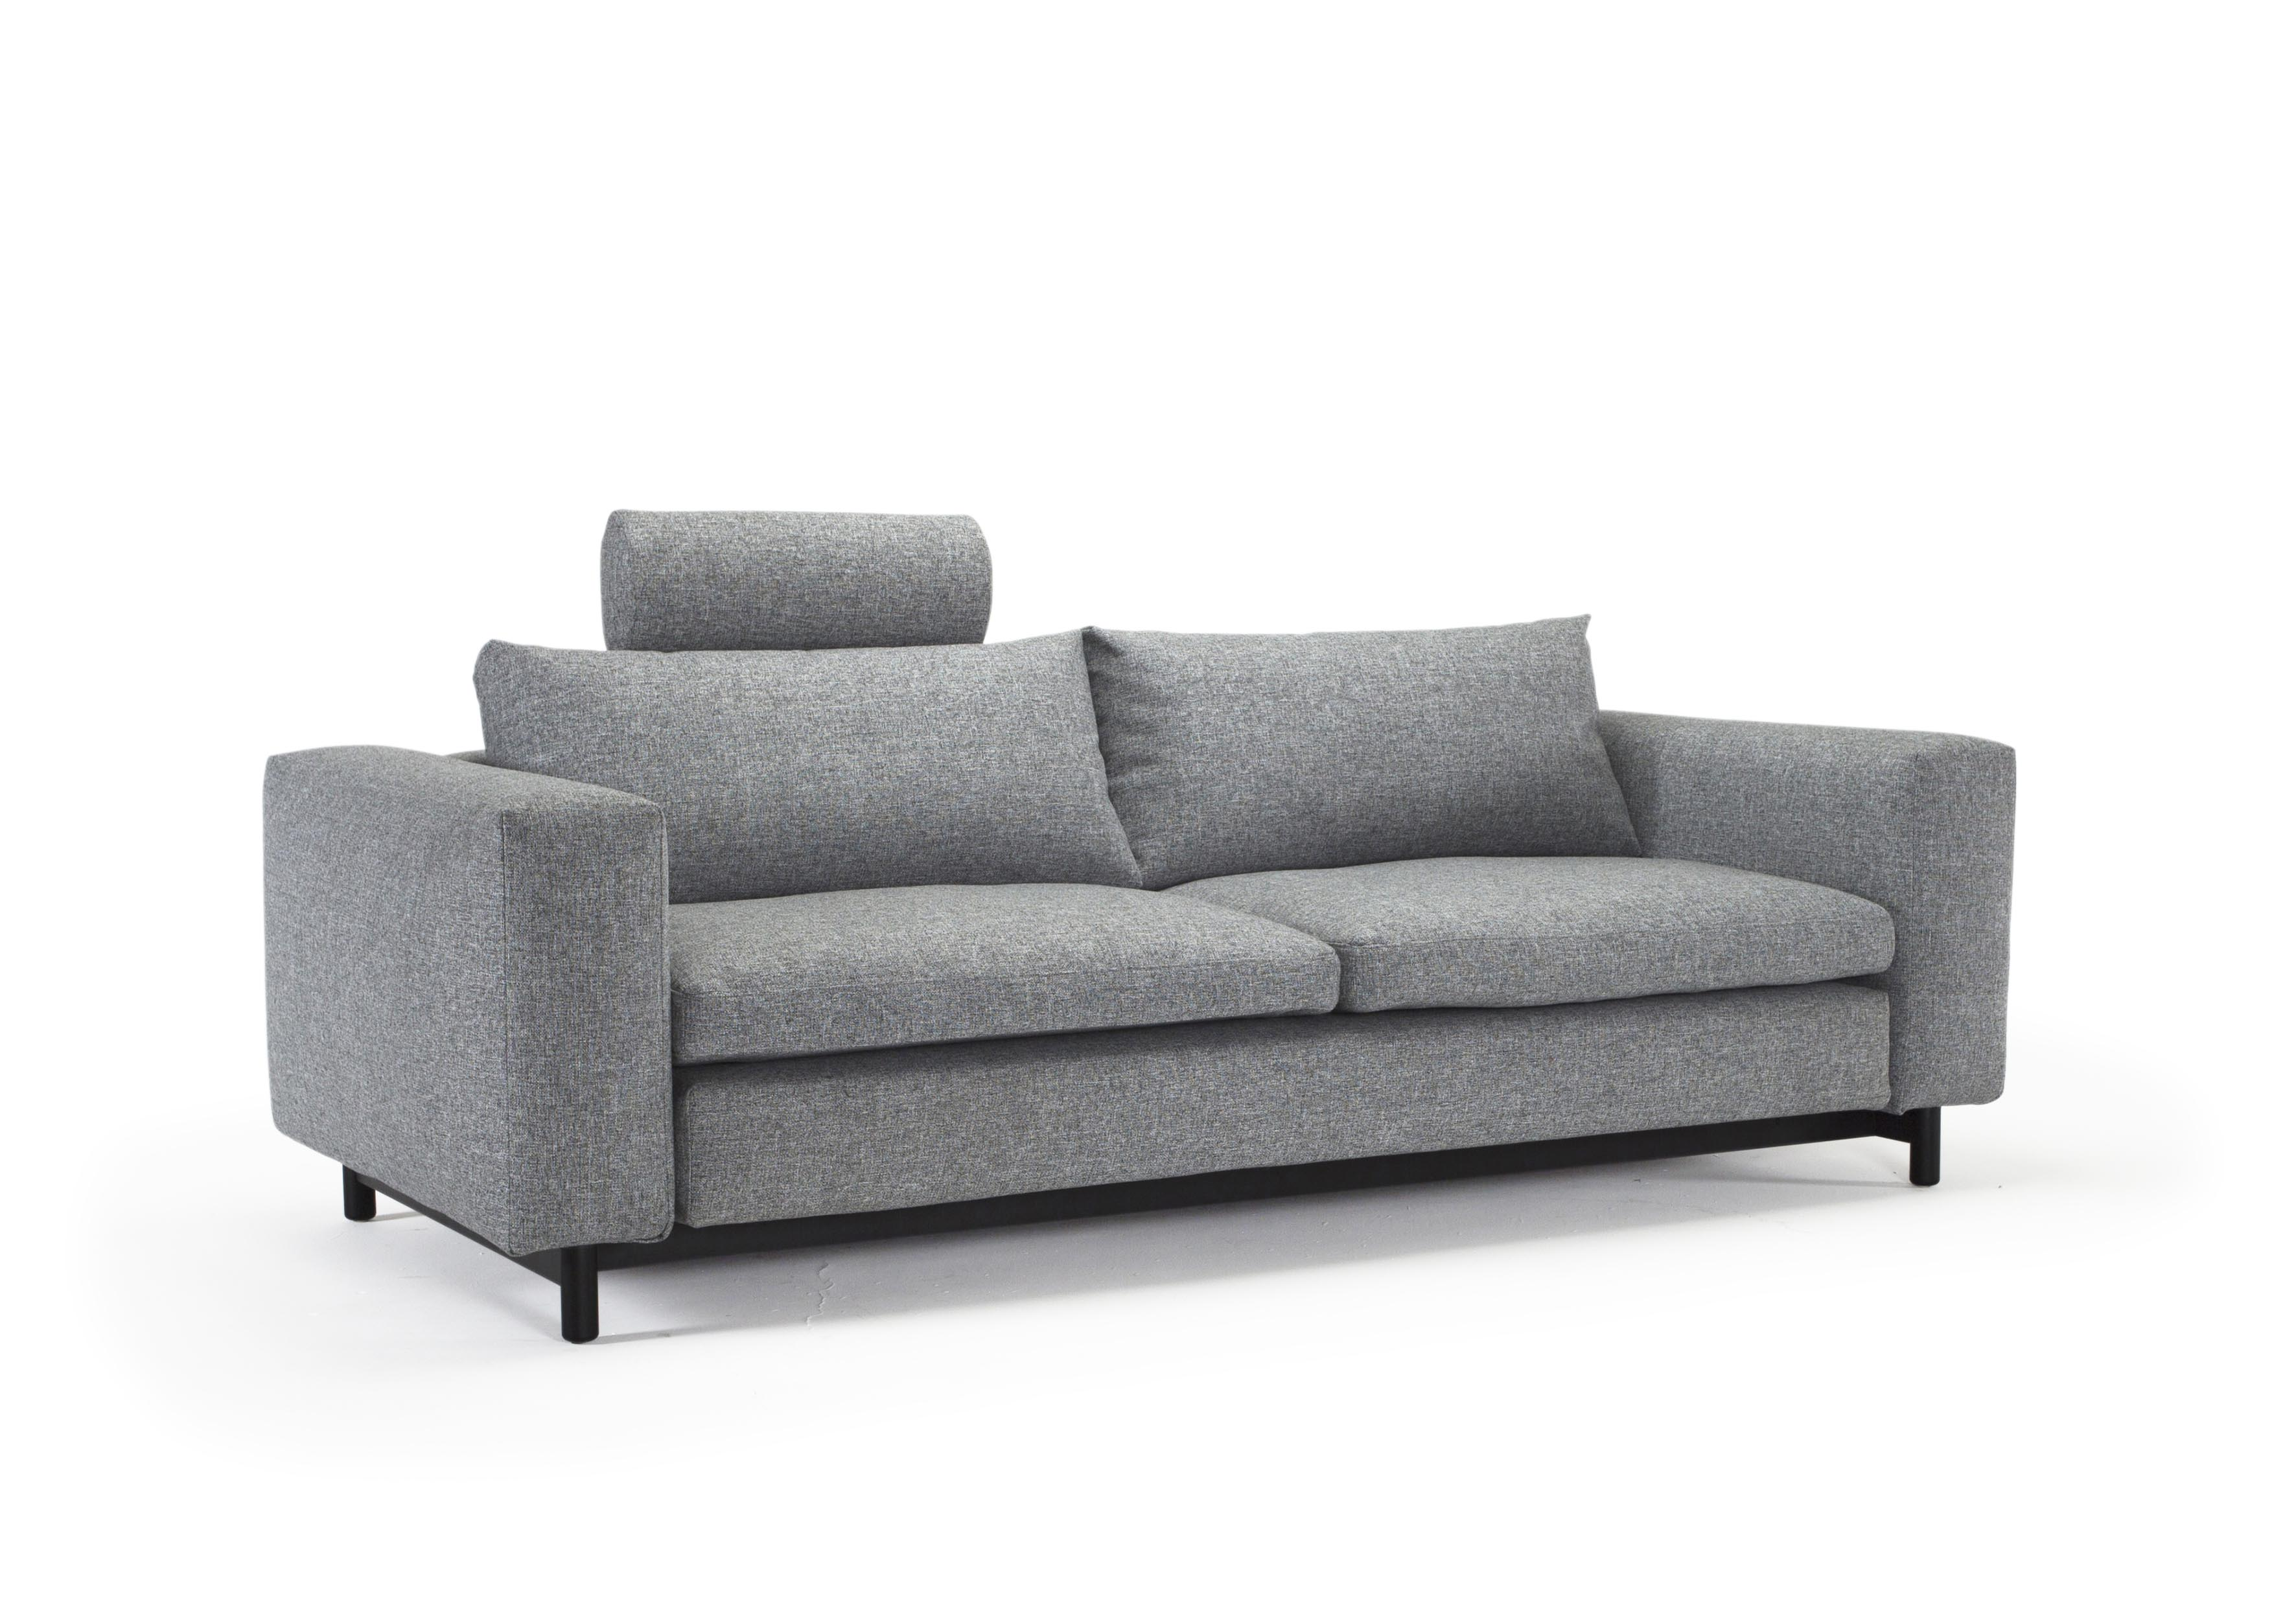 Magni sofa bed queen size twist granite by innovation Queen size sofa bed